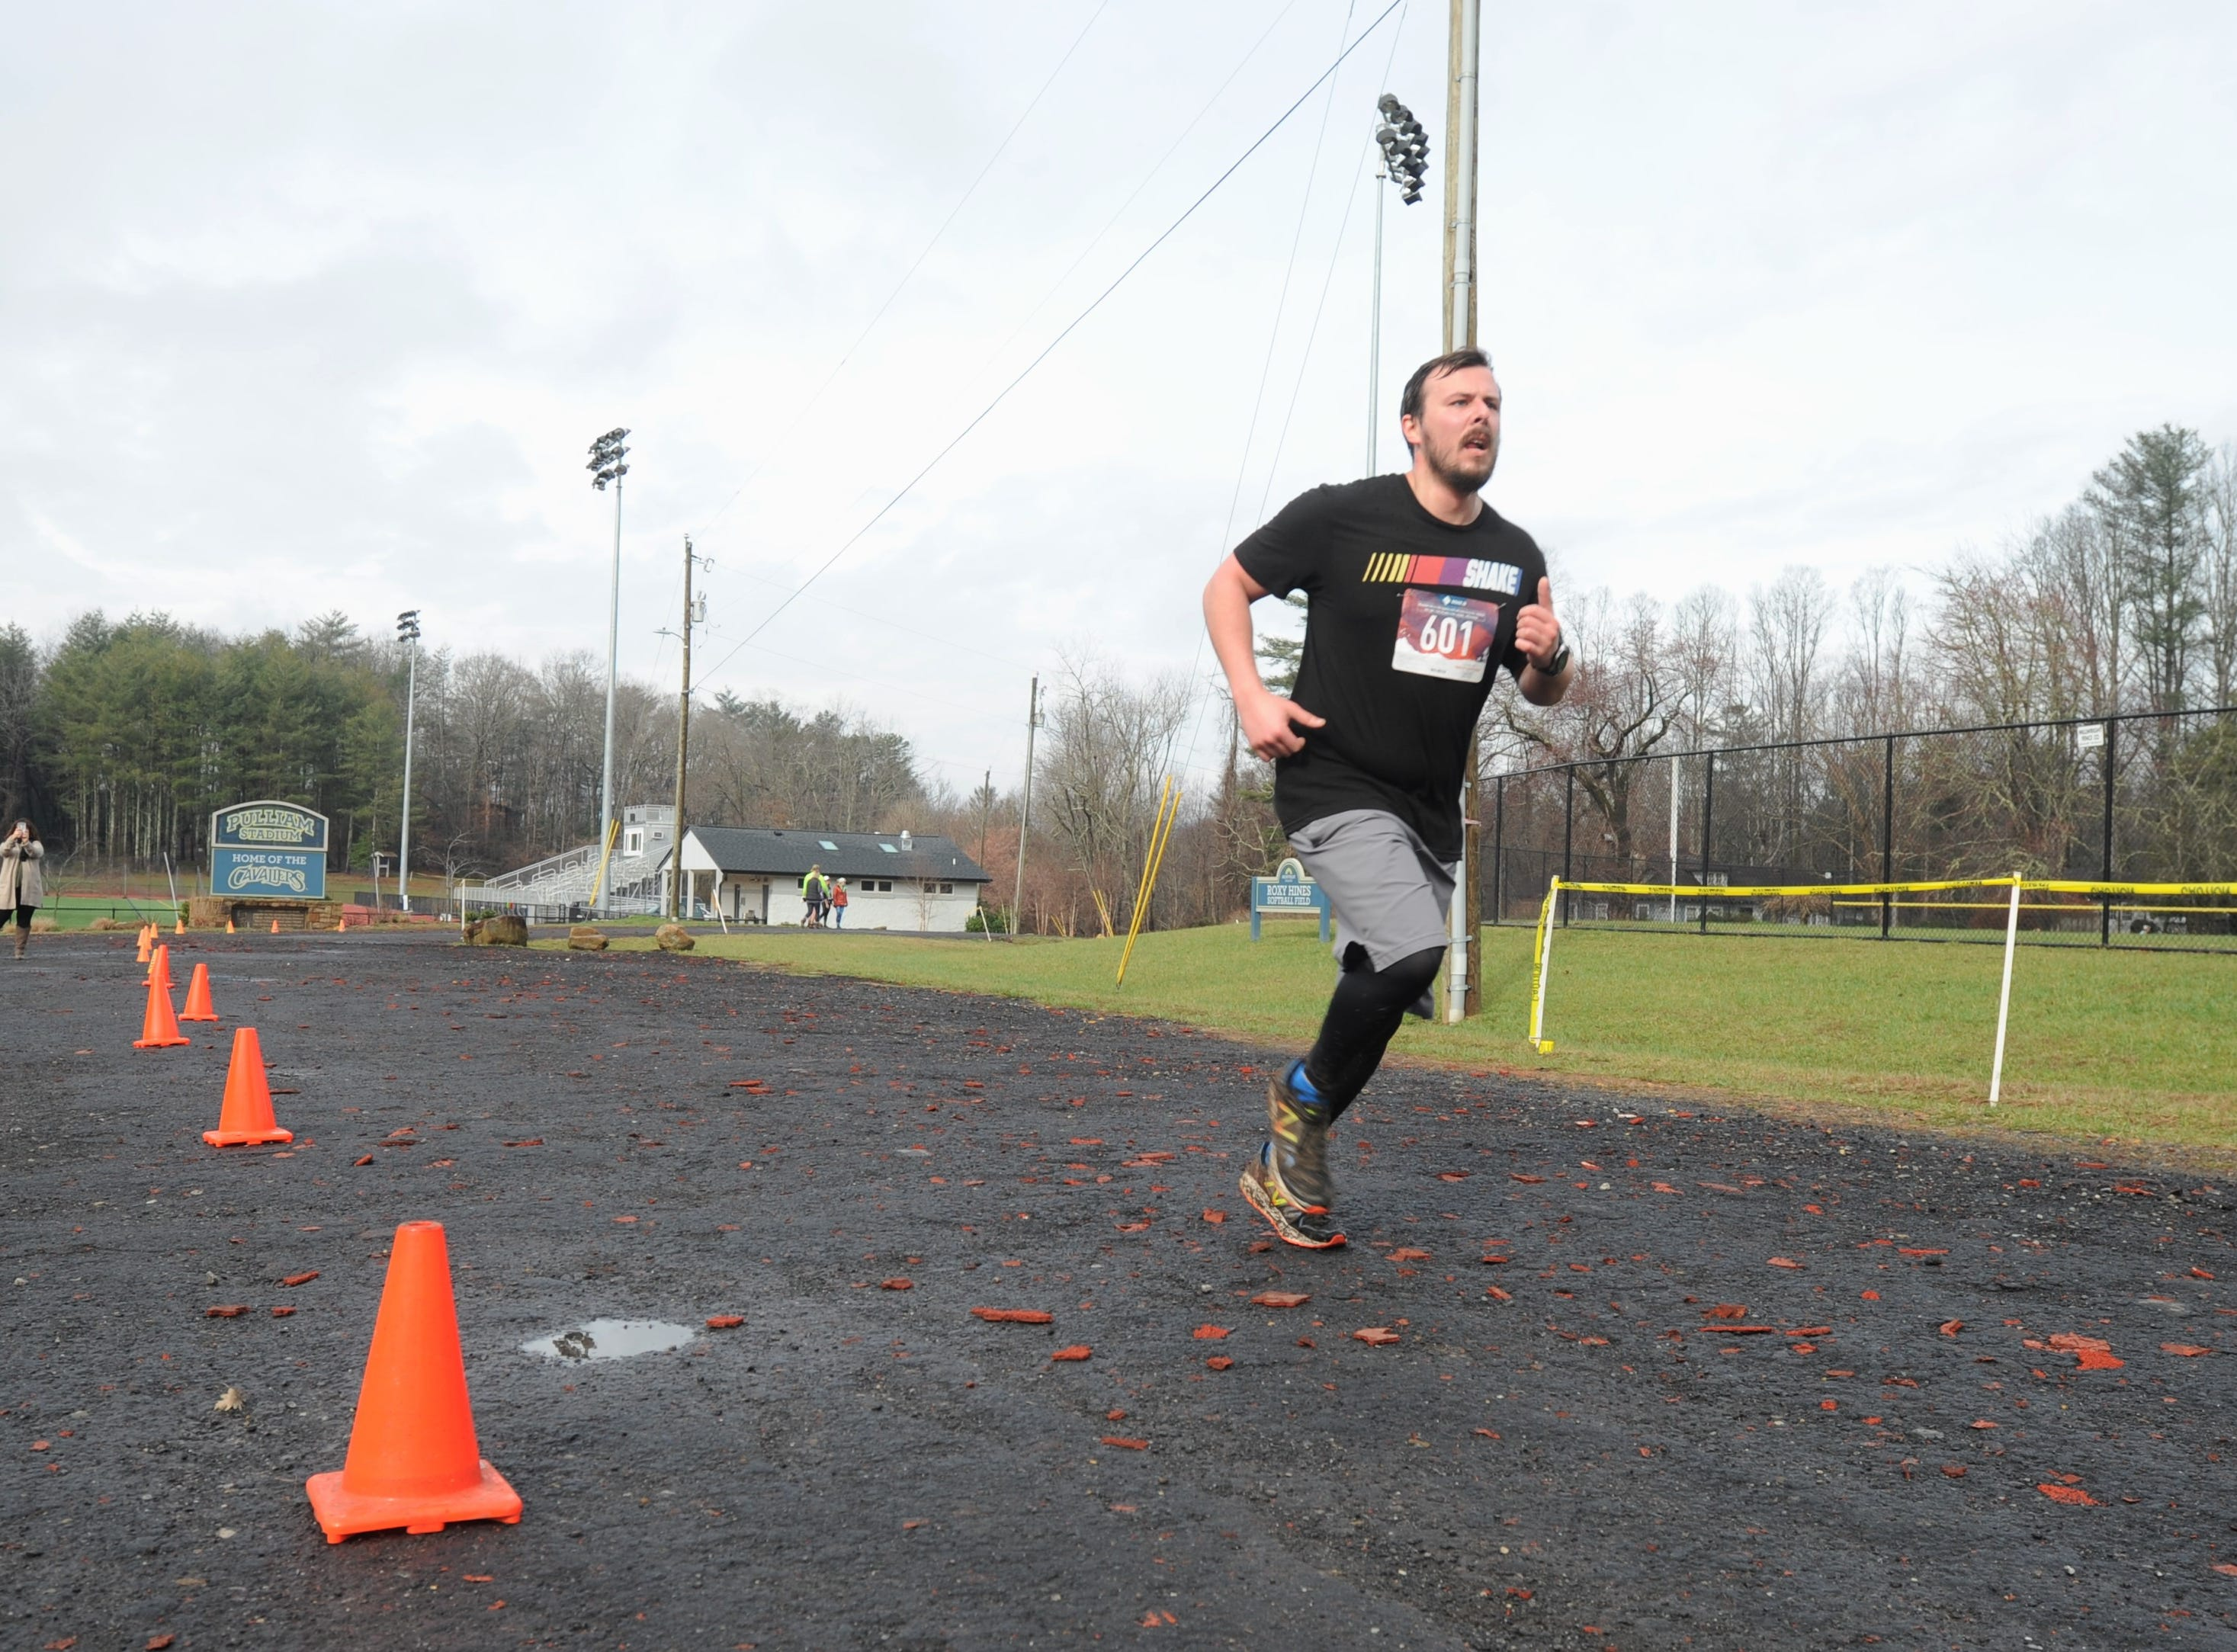 Wet and soggy trails didn't dampen spirits at the Black Mountain campus of Montreat College on March 9, when the Throwing Bones 5K was held for the second year. The event benefits Throwing Bones For a Cure, Inc., a nonprofit founded by Kenny Capps, who was diagnosed with multiple myeloma in 2015. His organization raises awareness of the disease and encourages those fighting it to get or remain physically active.